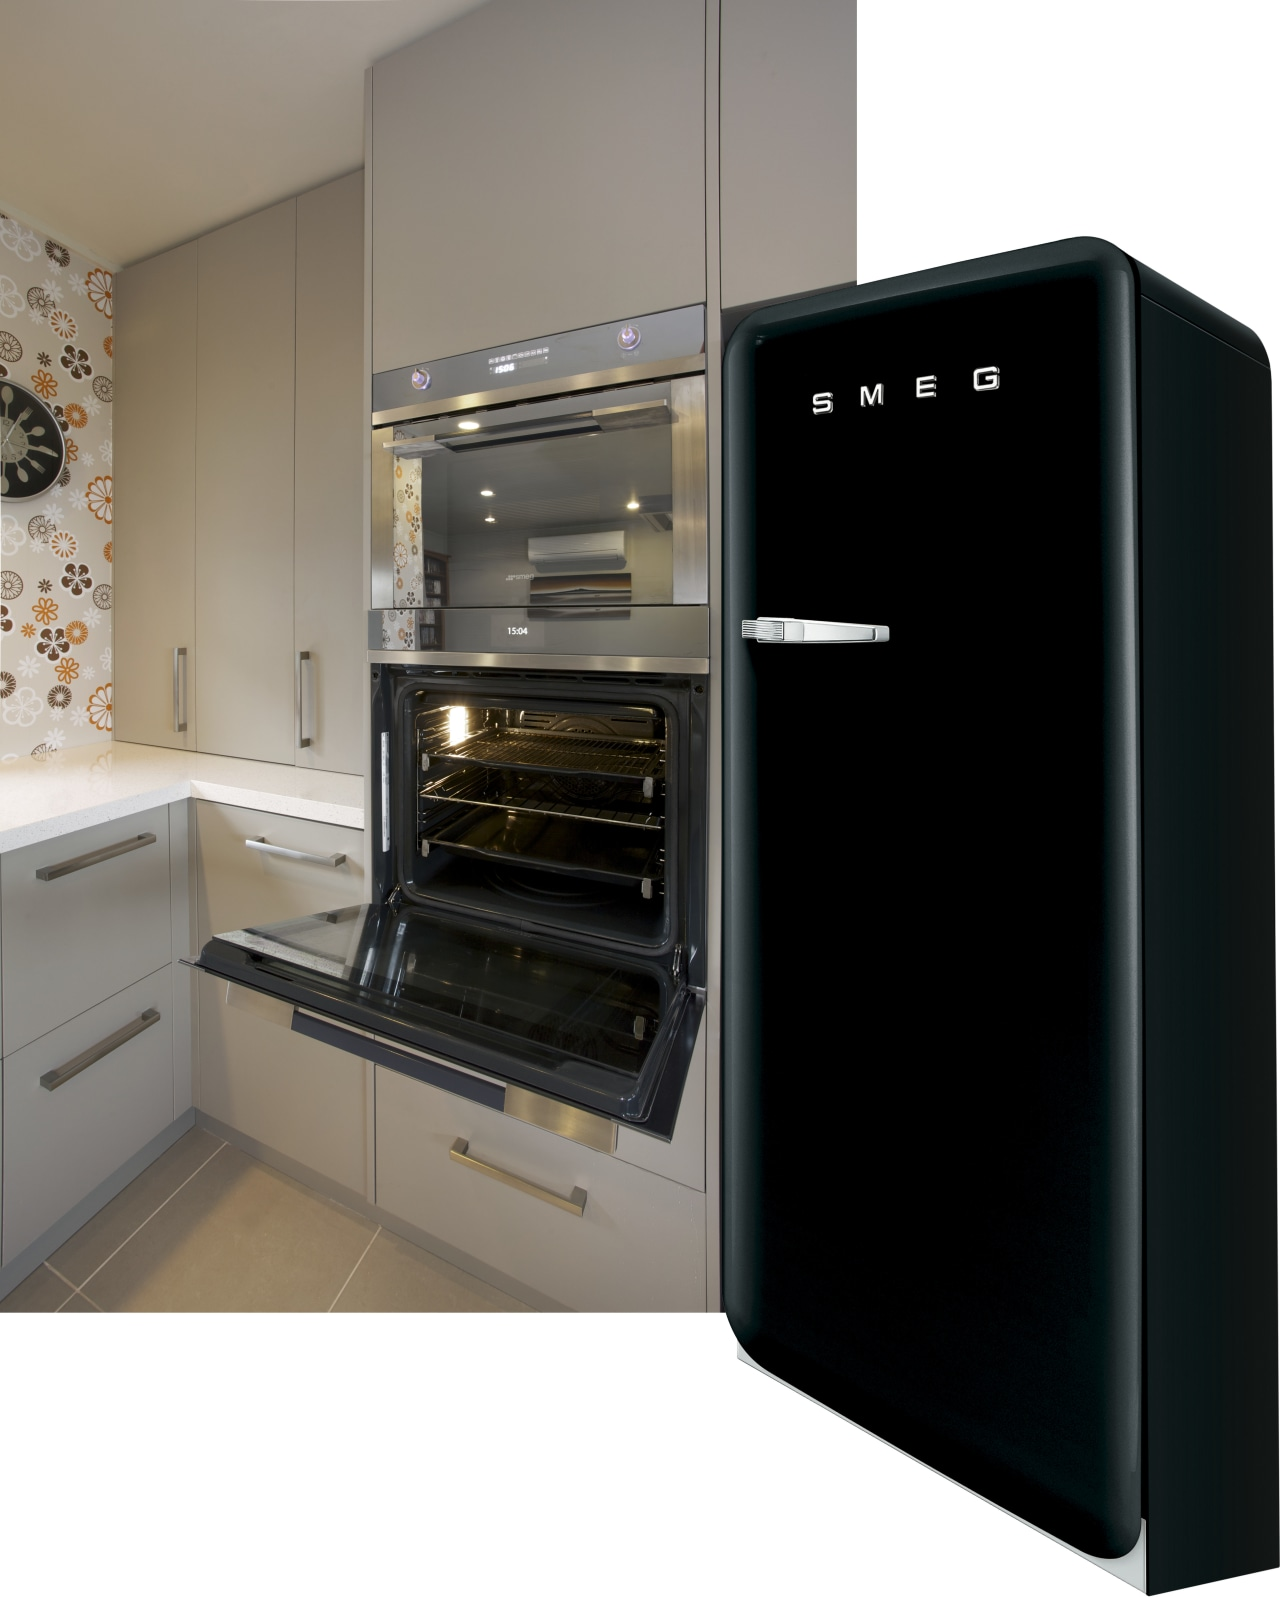 The owners chose the multifunctional prolytic Smeg Linea home appliance, kitchen, kitchen appliance, kitchen stove, major appliance, oven, product, small appliance, black